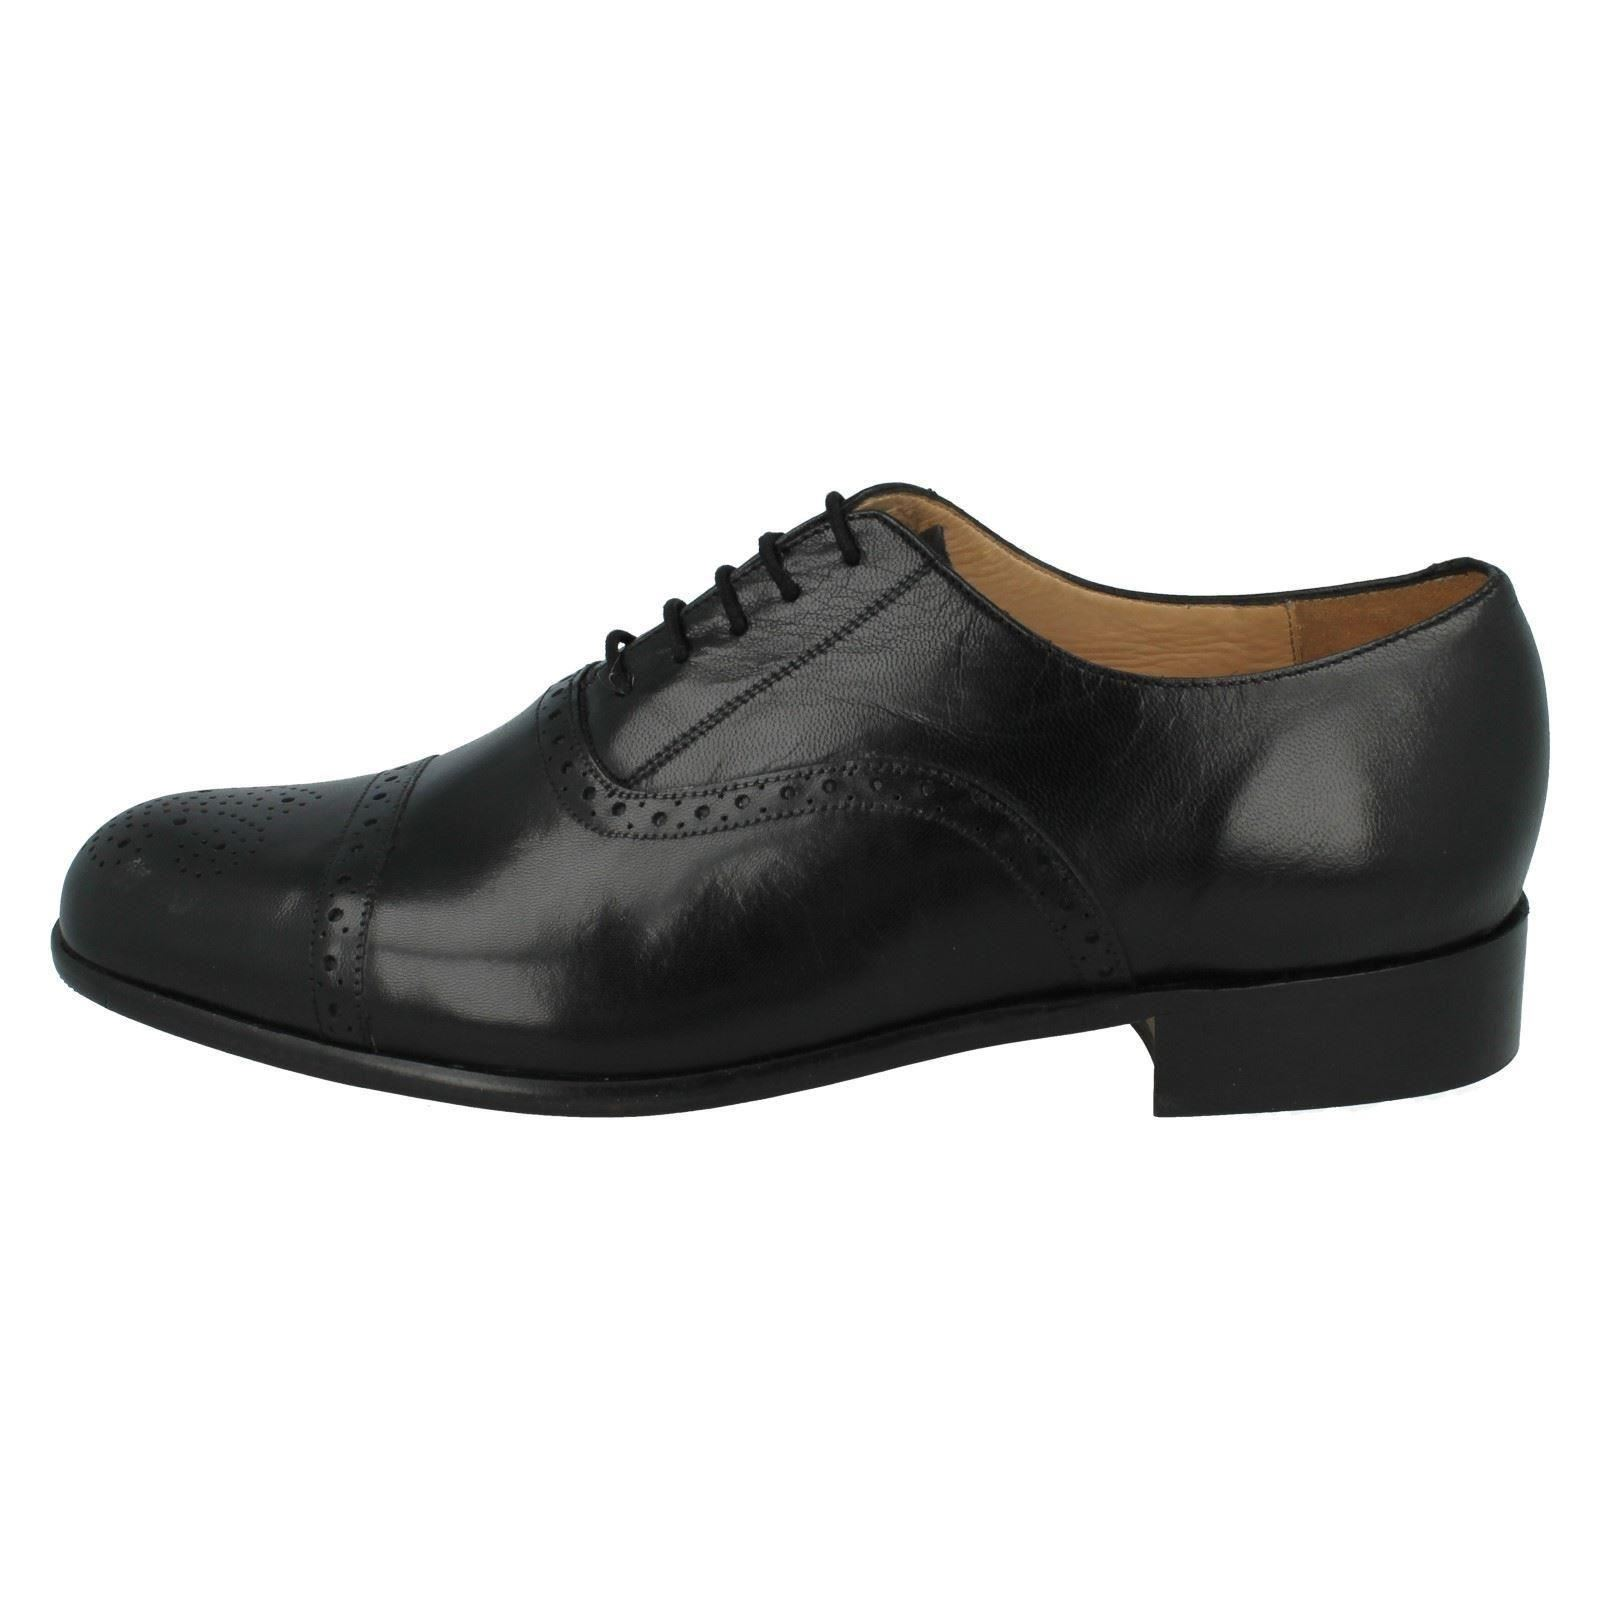 Pancras Formal Black 35021 Mens Fitting Grenson St 01 G Brogues Leather AqR0UR4w